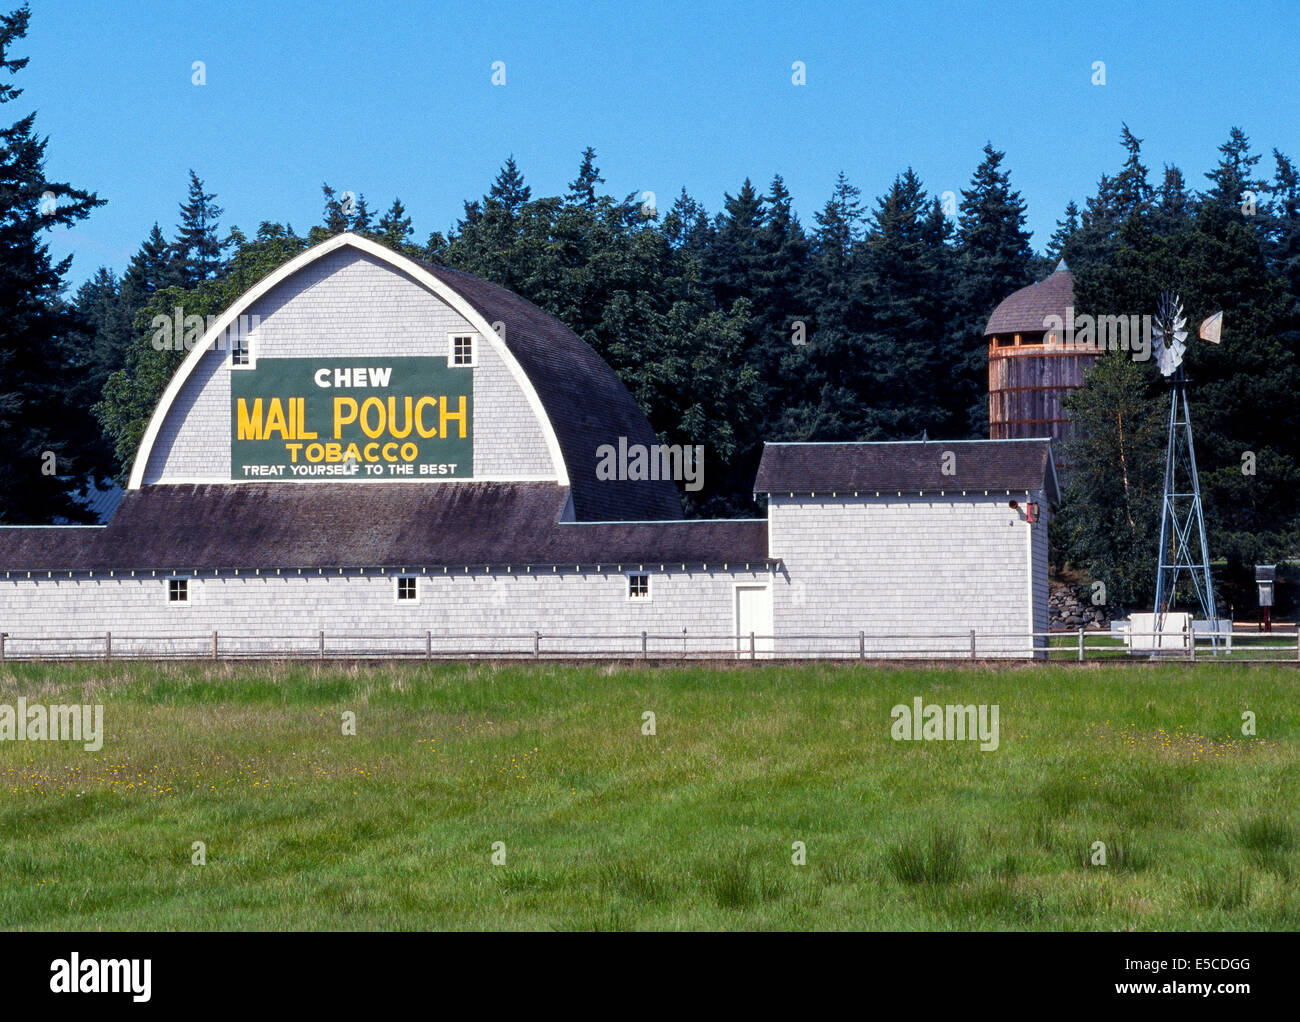 One of thousands of Mail Pouch Tobacco signs painted on the sides of barns across the U.S. is seen on Orcas Island - Stock Image